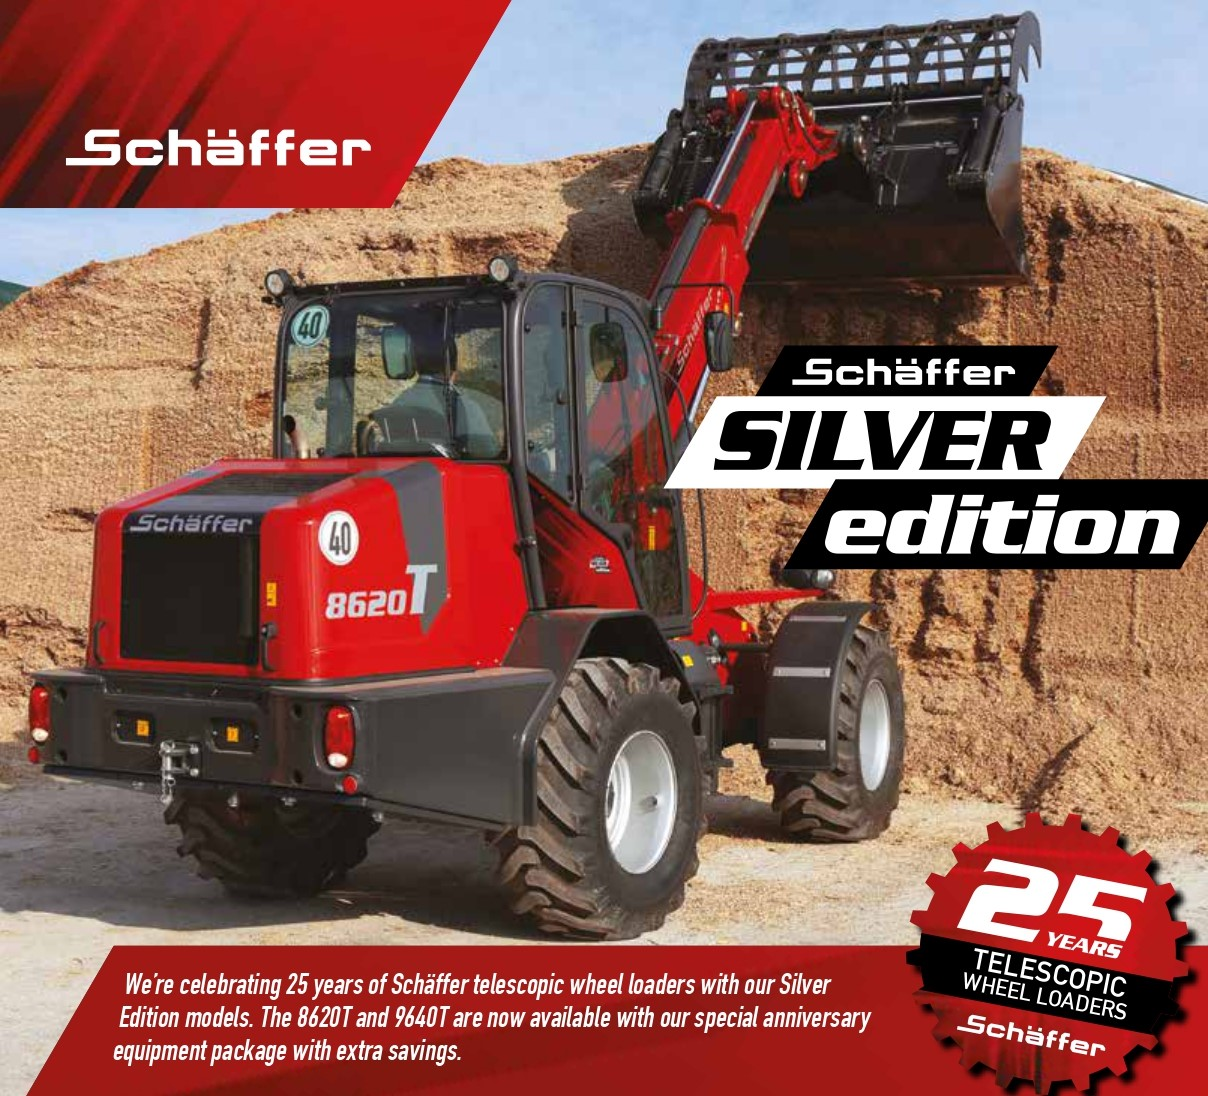 Schäffer Launches Silver Editions To Celebrate 25 Years